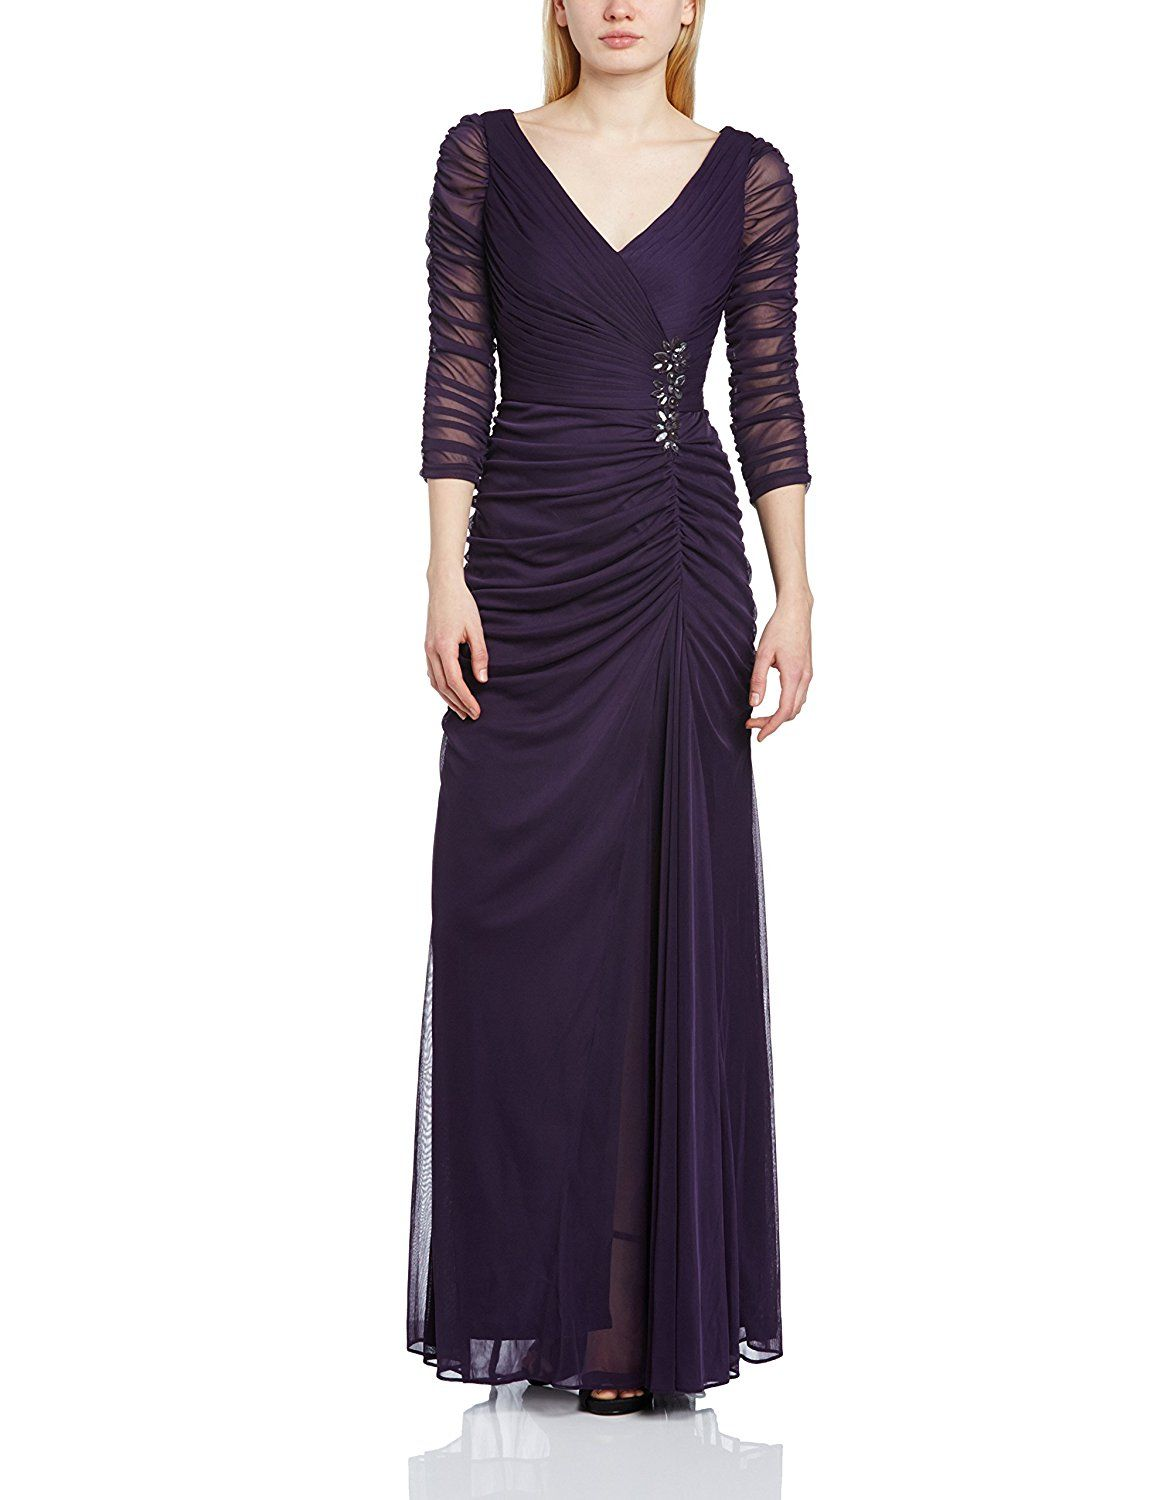 Adrianna Papell Women\'s Draped Covered Gown | Women\'s Fashion ...